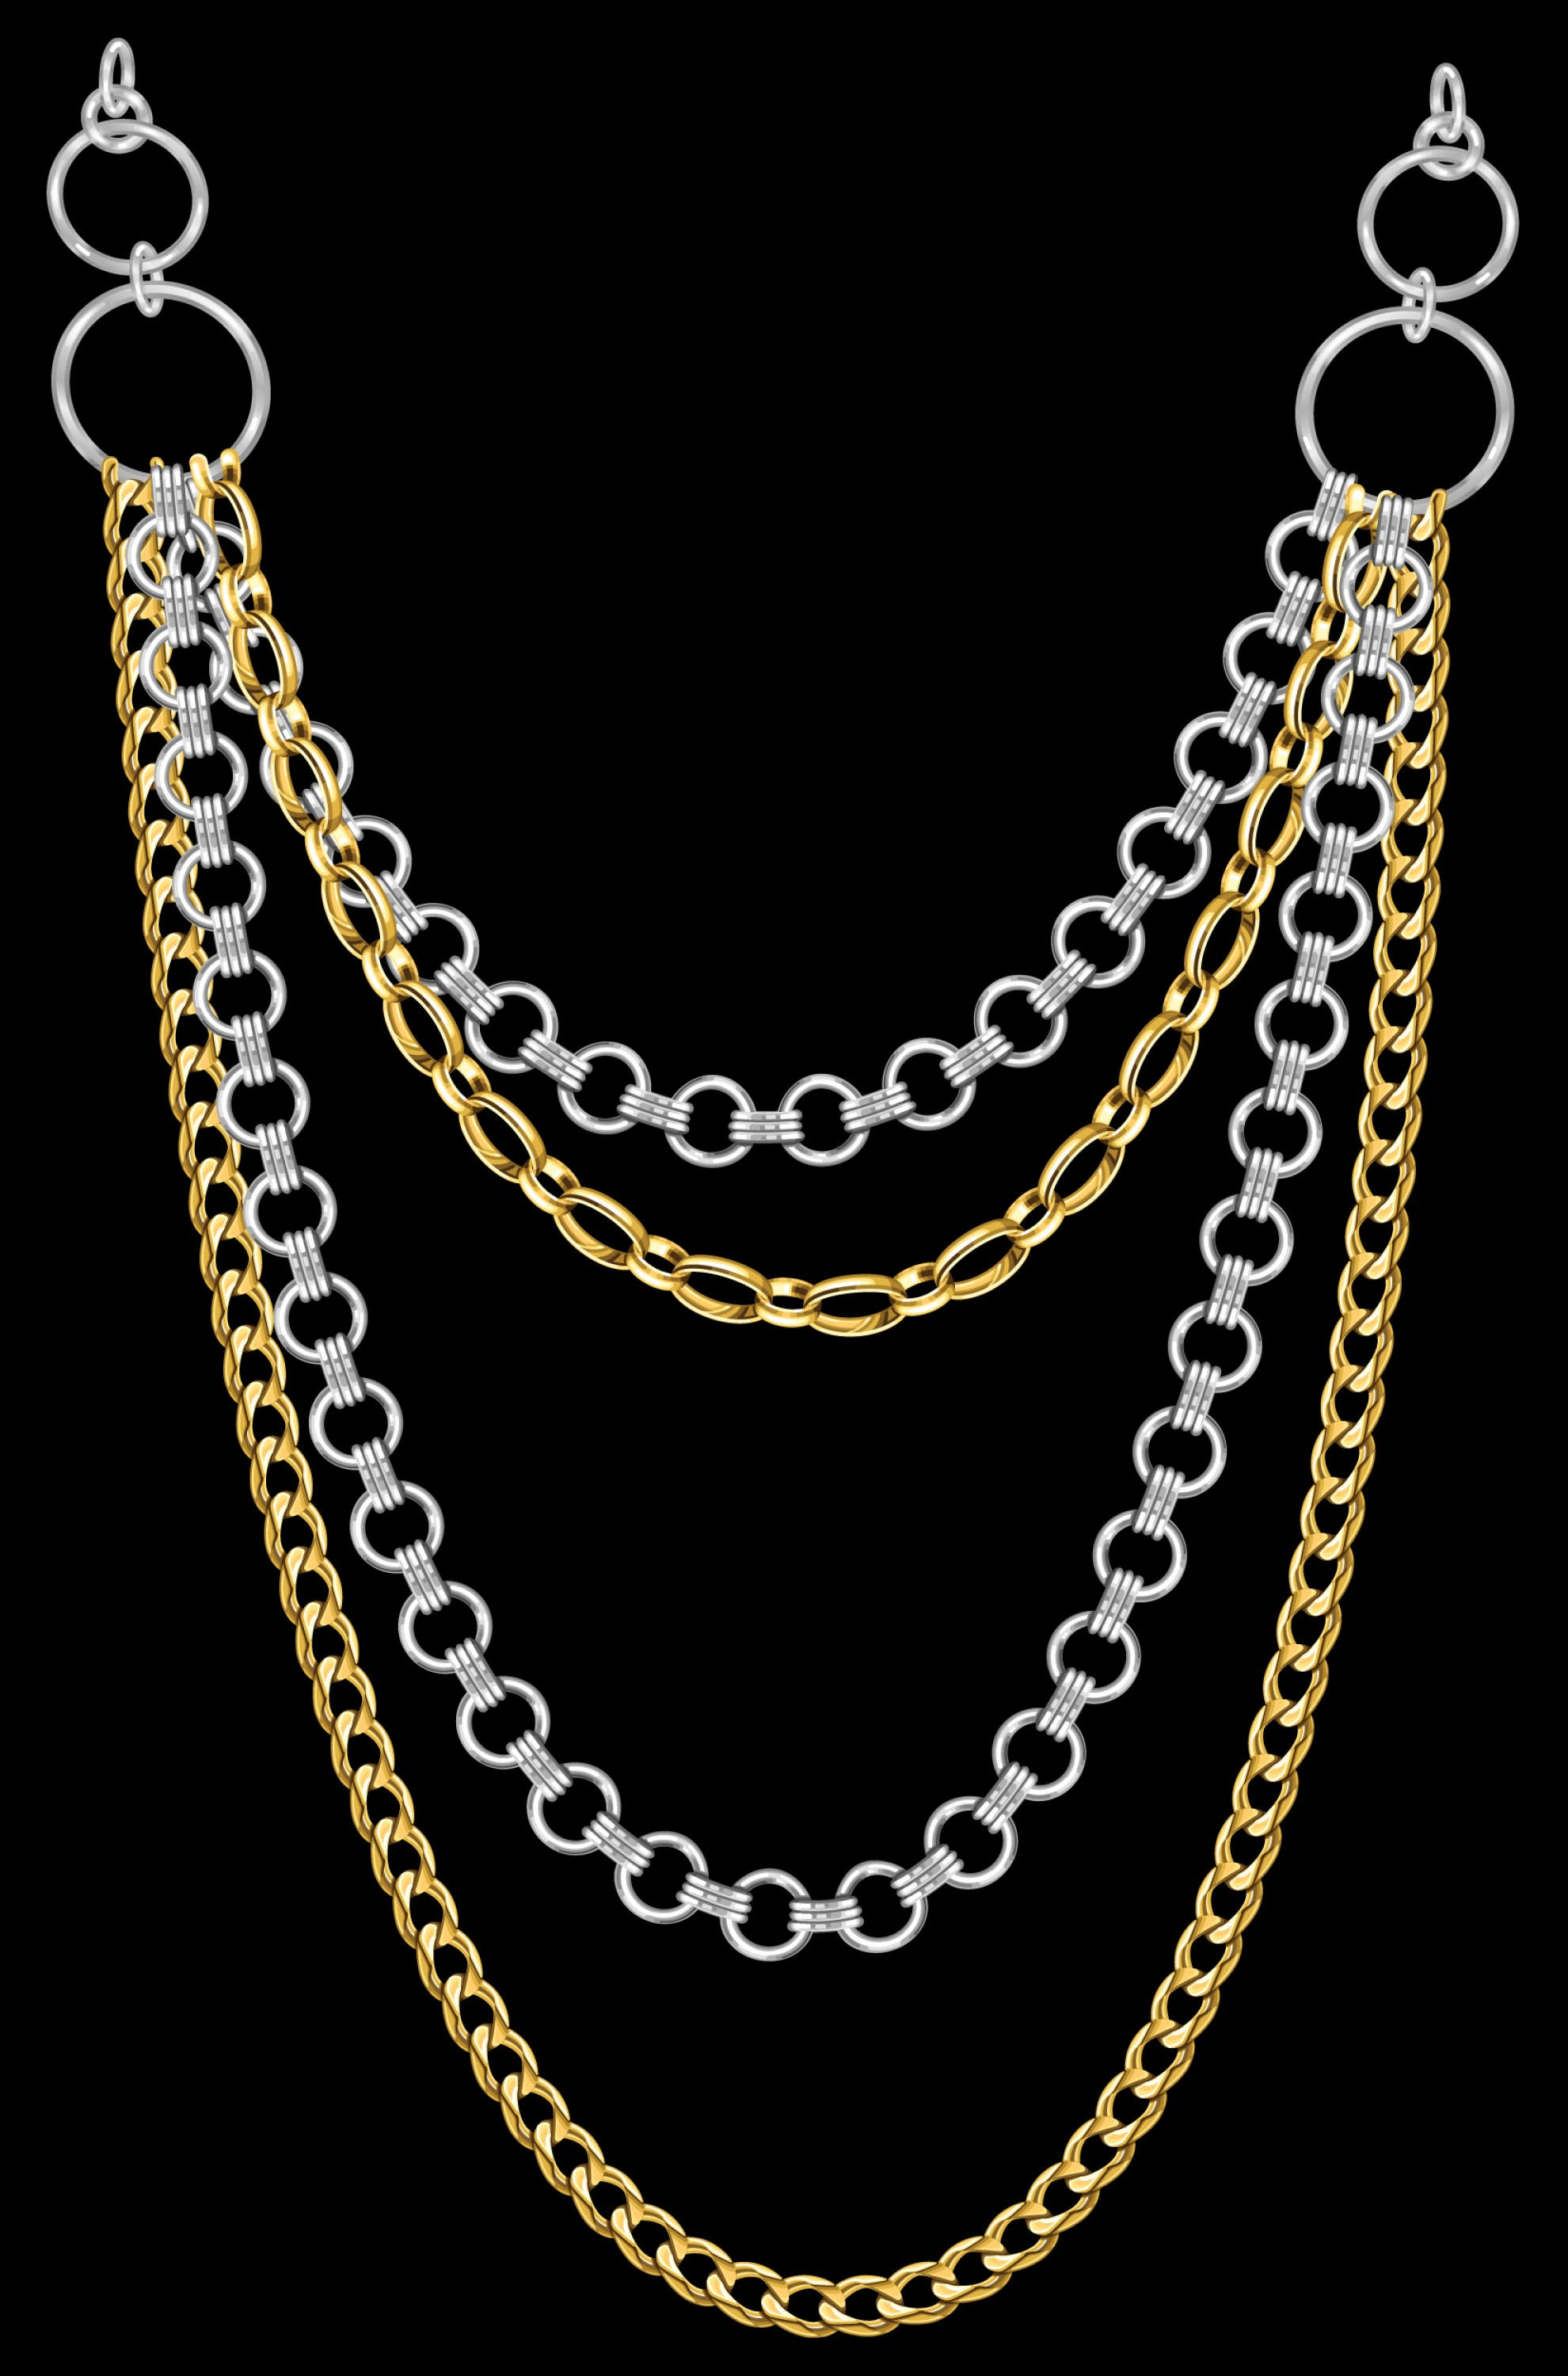 Necklace Vector Chain Grapicts: Free Multi Strand Jewelry Necklace Graphic